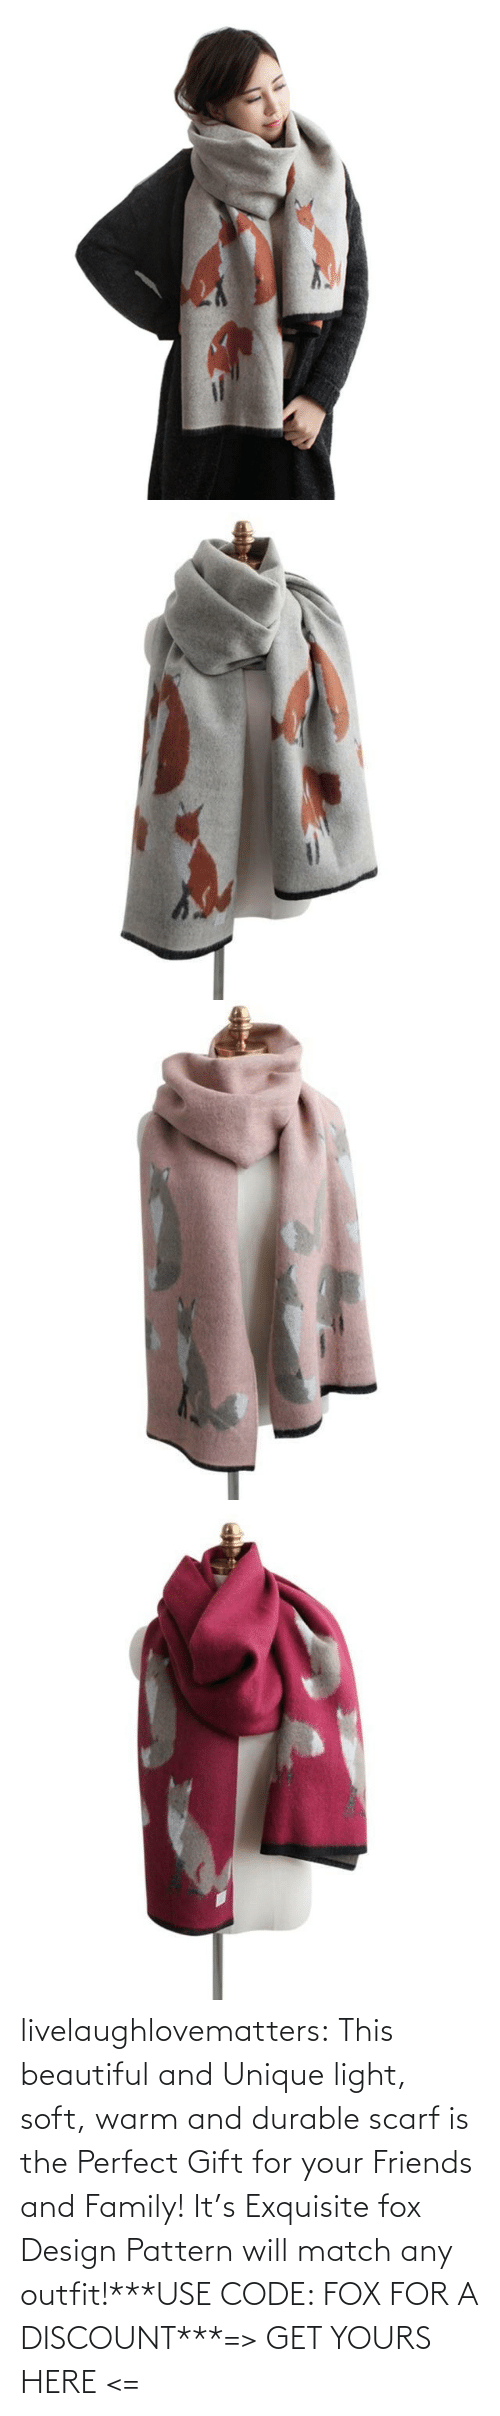 Gt: livelaughlovematters:  This beautiful and Unique light, soft, warm and durable scarf is the Perfect Gift for your Friends and Family! It's Exquisite fox Design Pattern will match any outfit!***USE CODE: FOX FOR A DISCOUNT***=> GET YOURS HERE <=